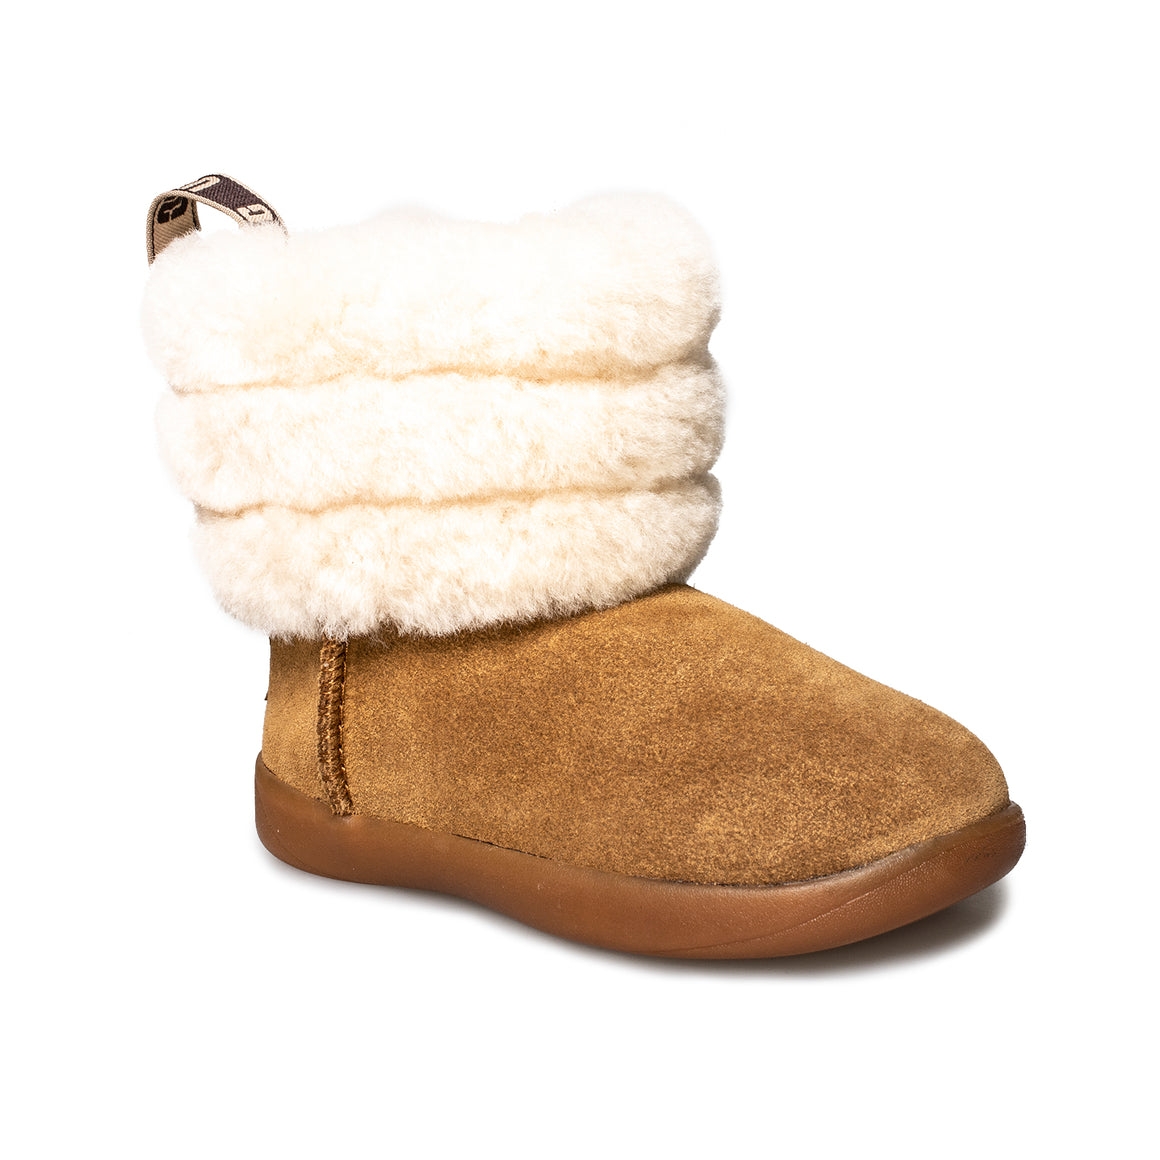 UGG Mini Quilted Fluff Chestnut Boot's - Toddler's